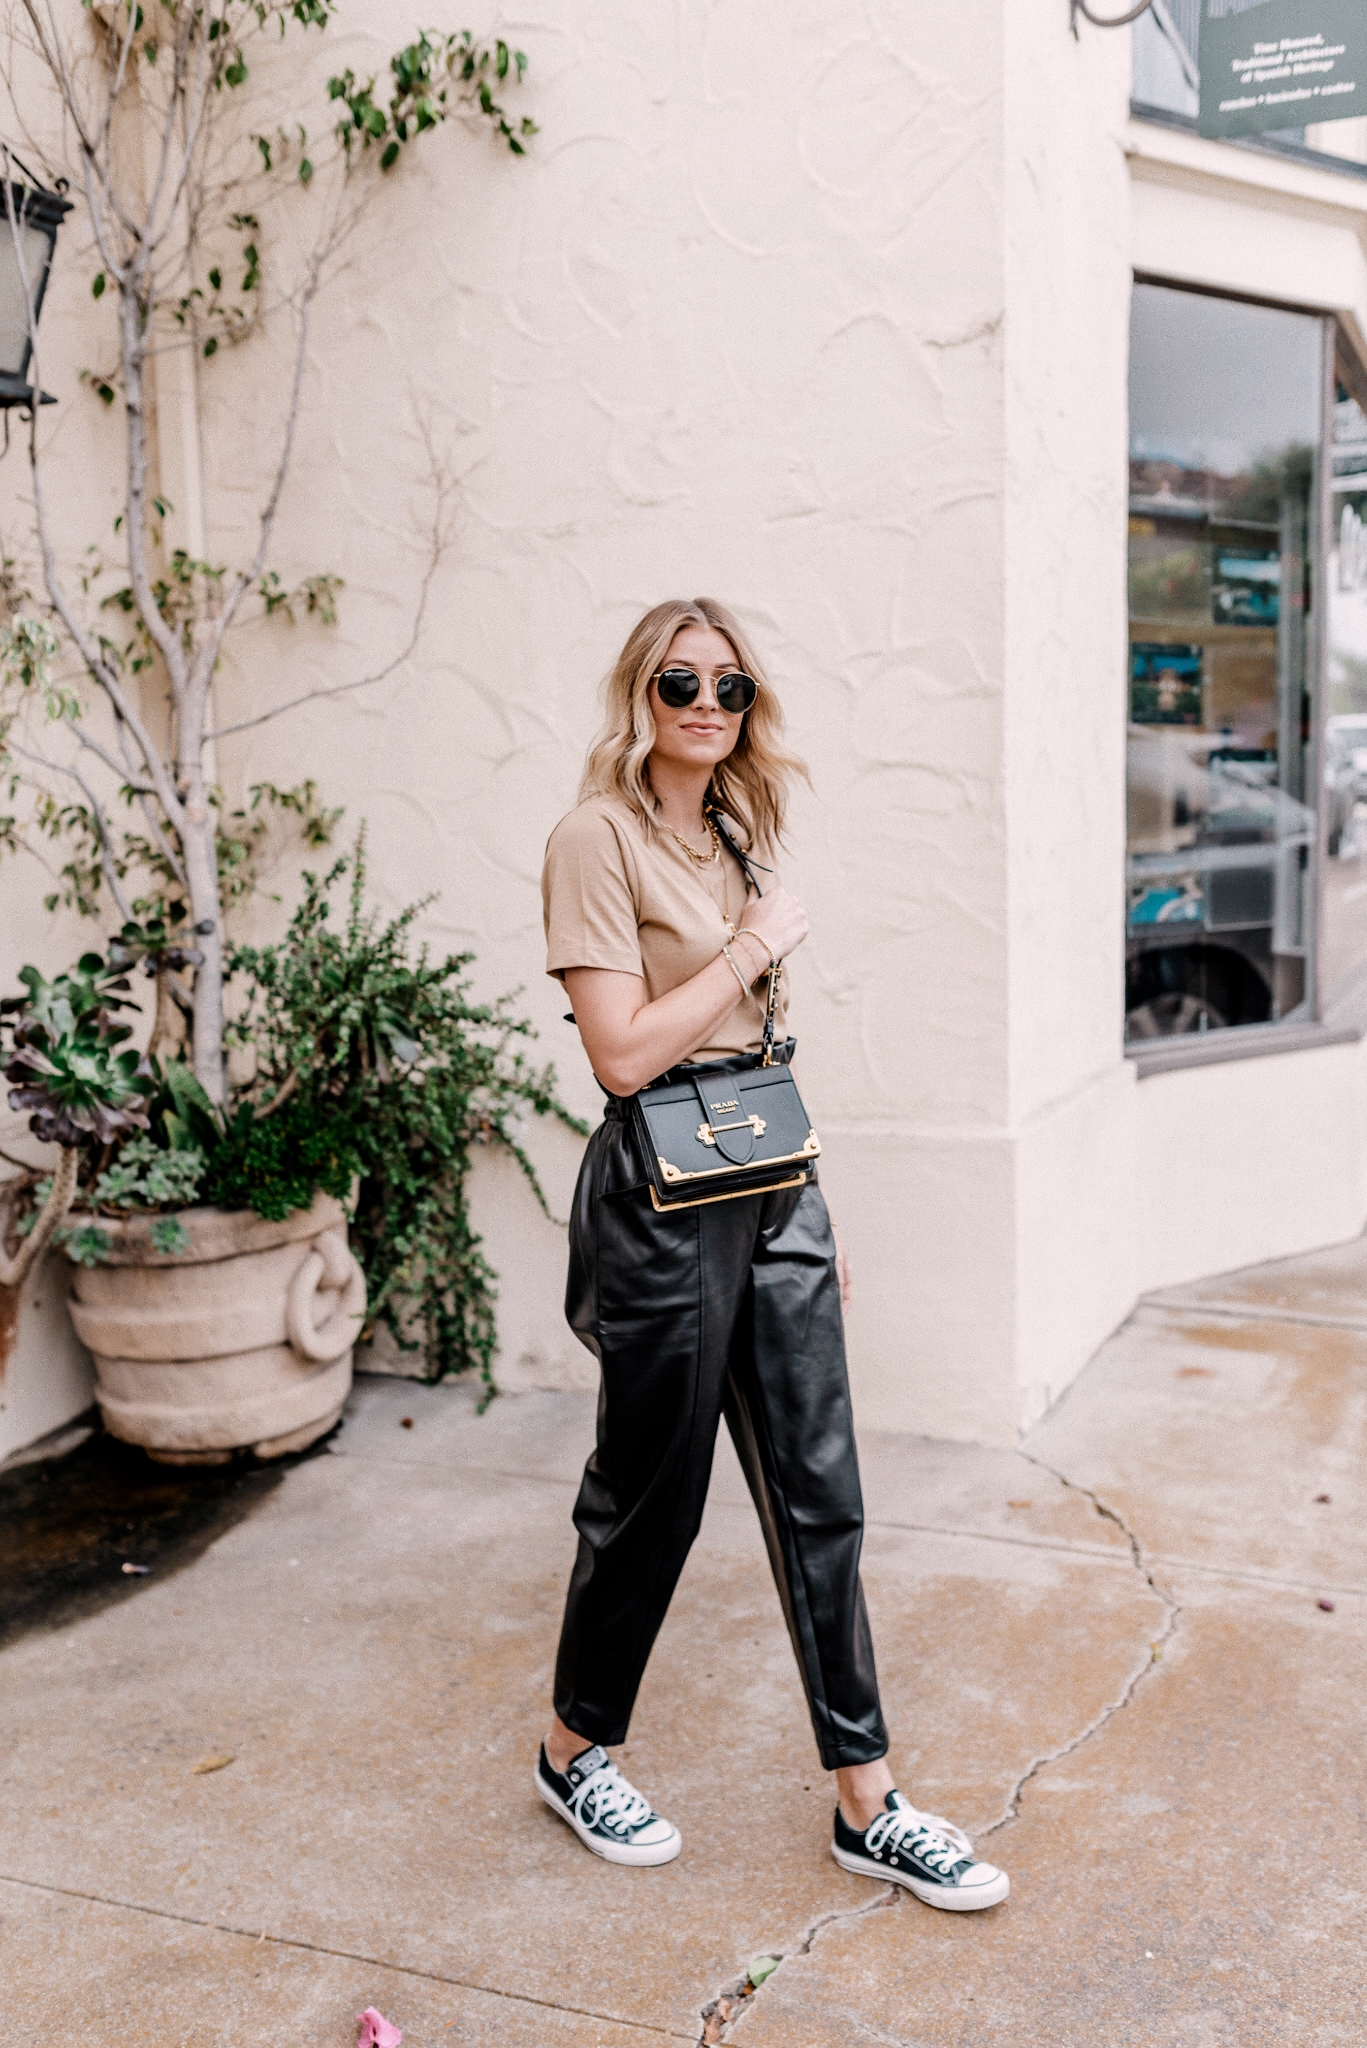 Top Looks of 2020 | Top Looks by San Diego fashion blog, Navy Grace: image of a woman wearing a brown shirt, faux leather paper bag pants, and black and white converse sneakers.